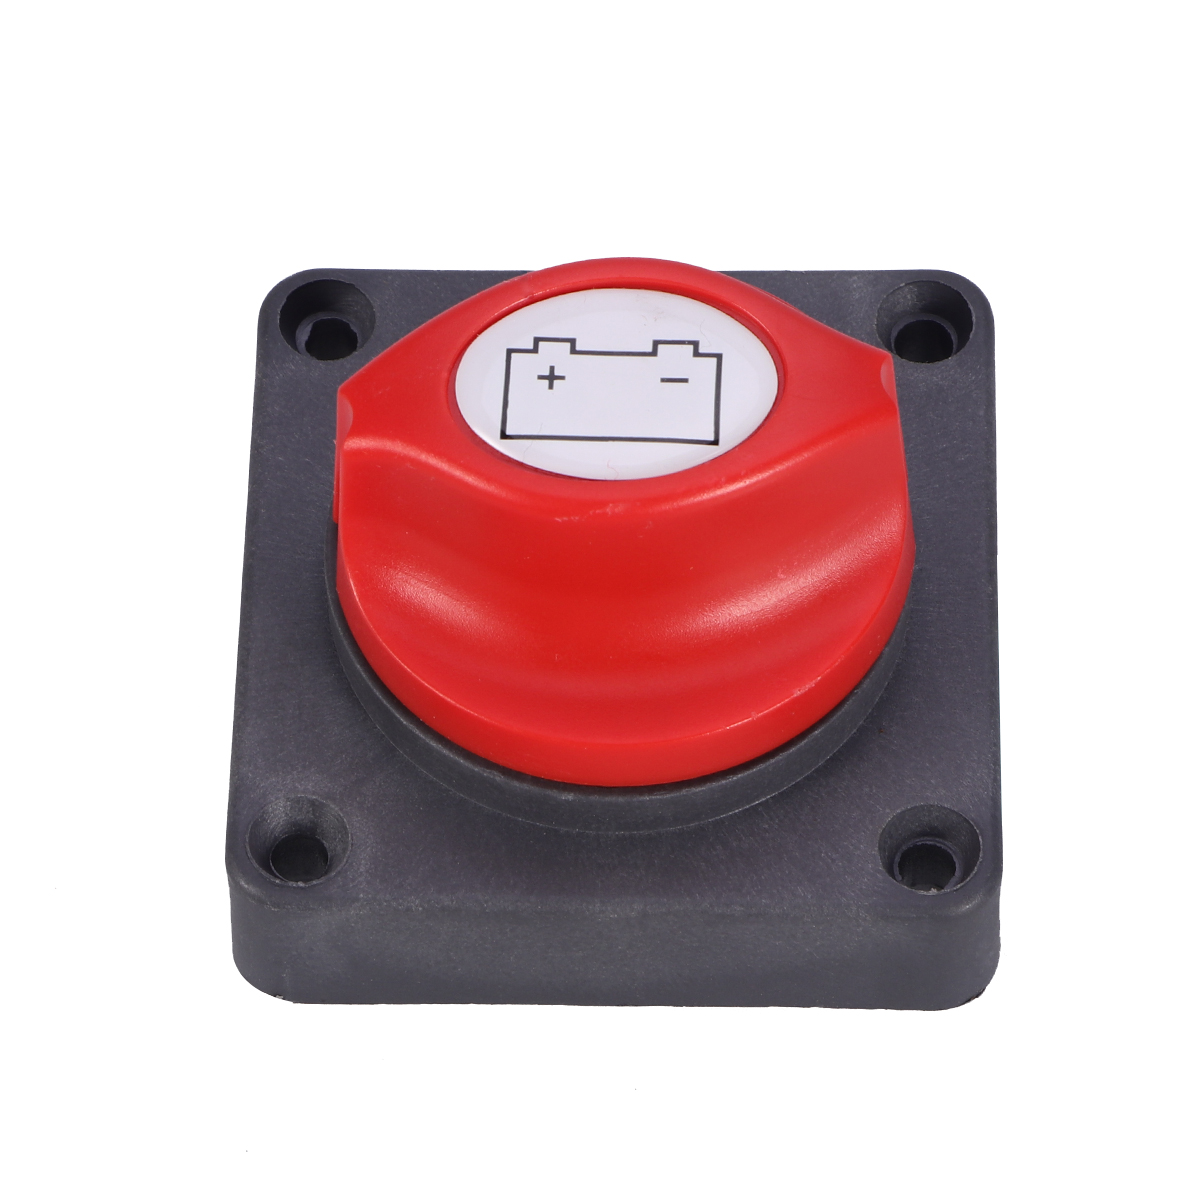 300A Battery Disconnect Isolator Switch for Marine Boat Car Vehicles motorcycle Cut Off Kill Switch Disconnector Accessories image